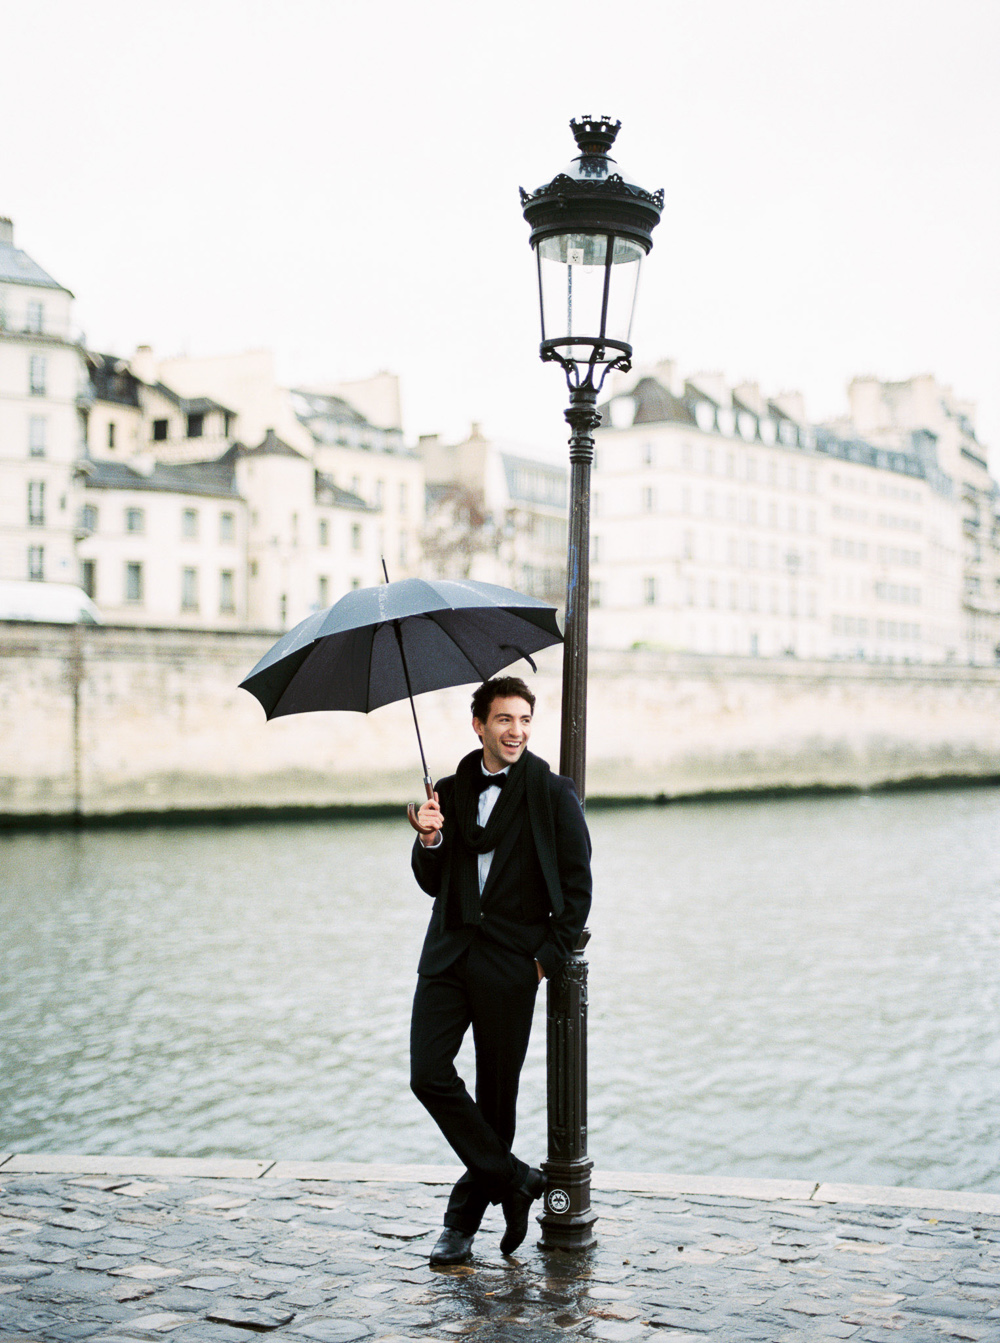 rainy day wedding engagement photo paris umbrella ideas | Paris wedding photography by Lara Lam